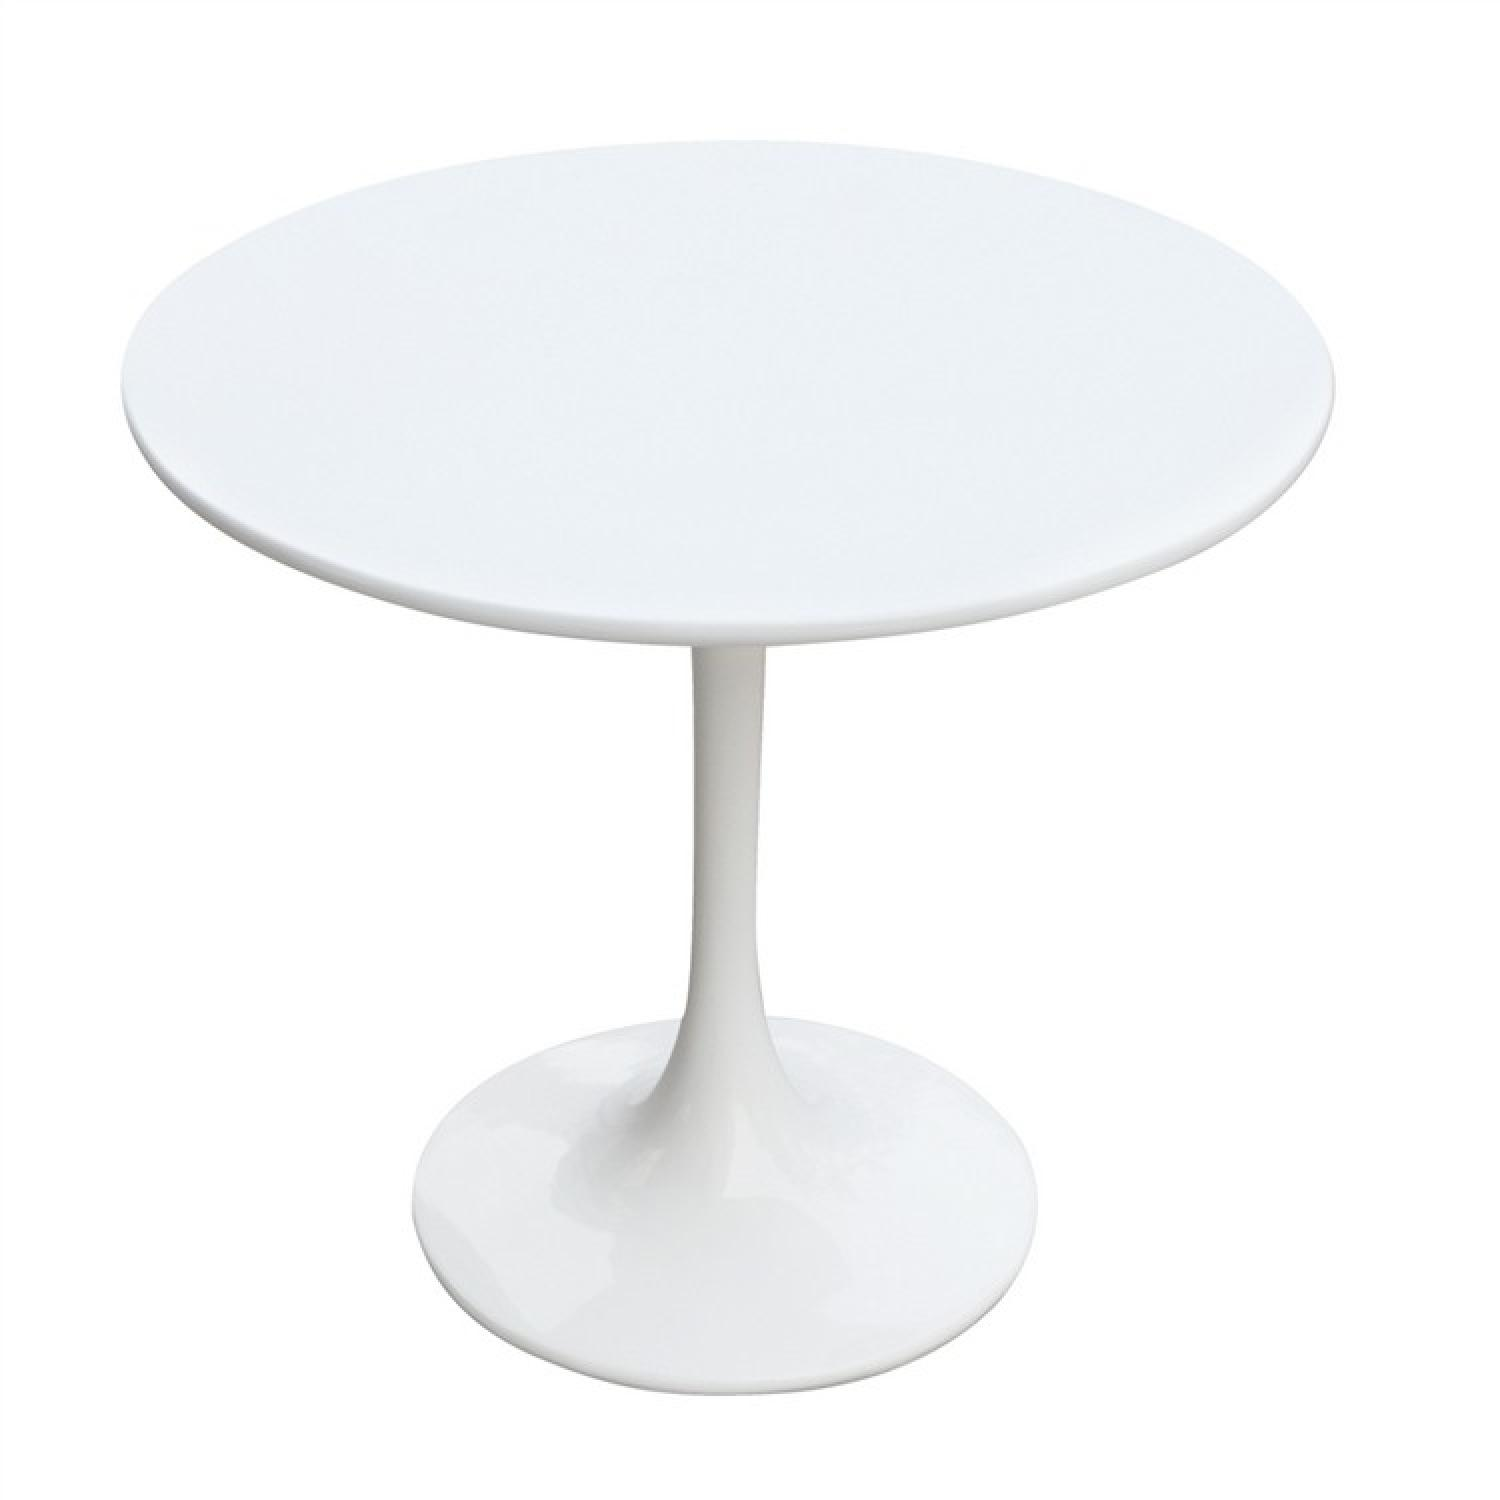 Mid Century Style Side Table in White Lacquer Fiber Glass